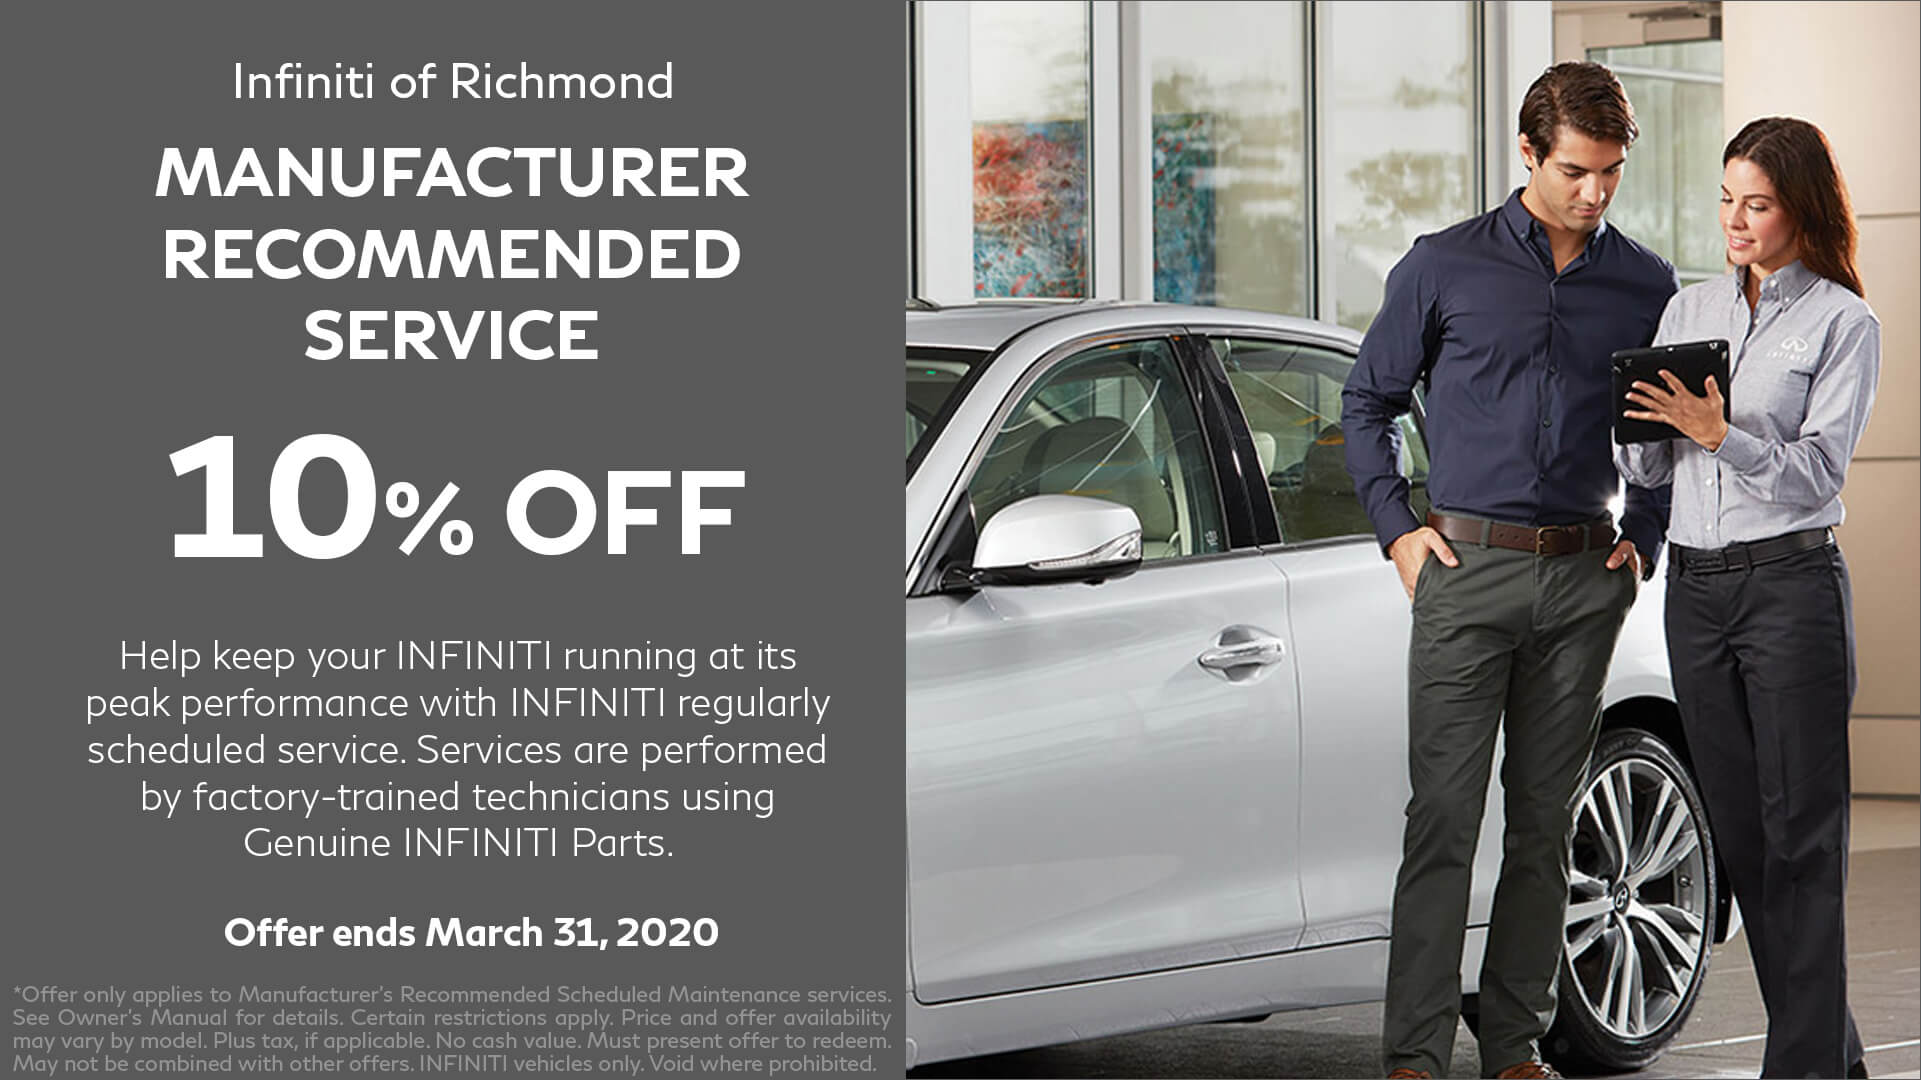 Manufacture Recommended Service at Infiniti of Richmond